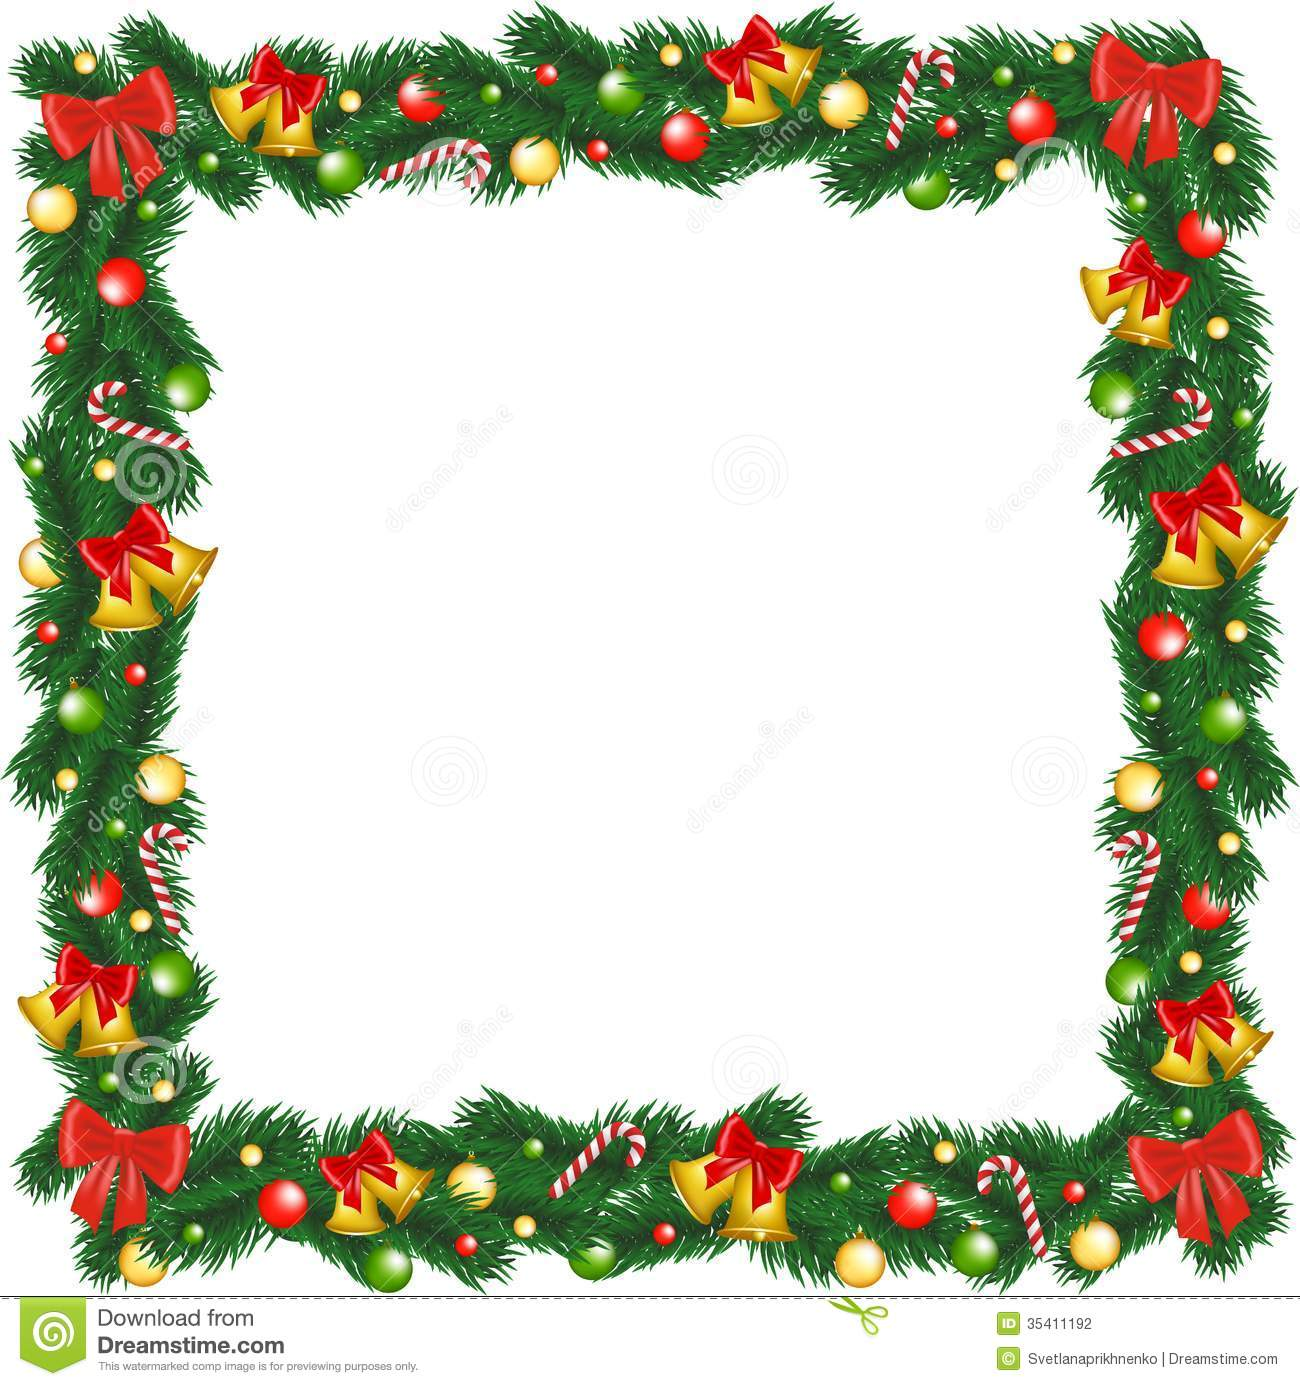 print christmas garland frame stock vector illustration. Black Bedroom Furniture Sets. Home Design Ideas